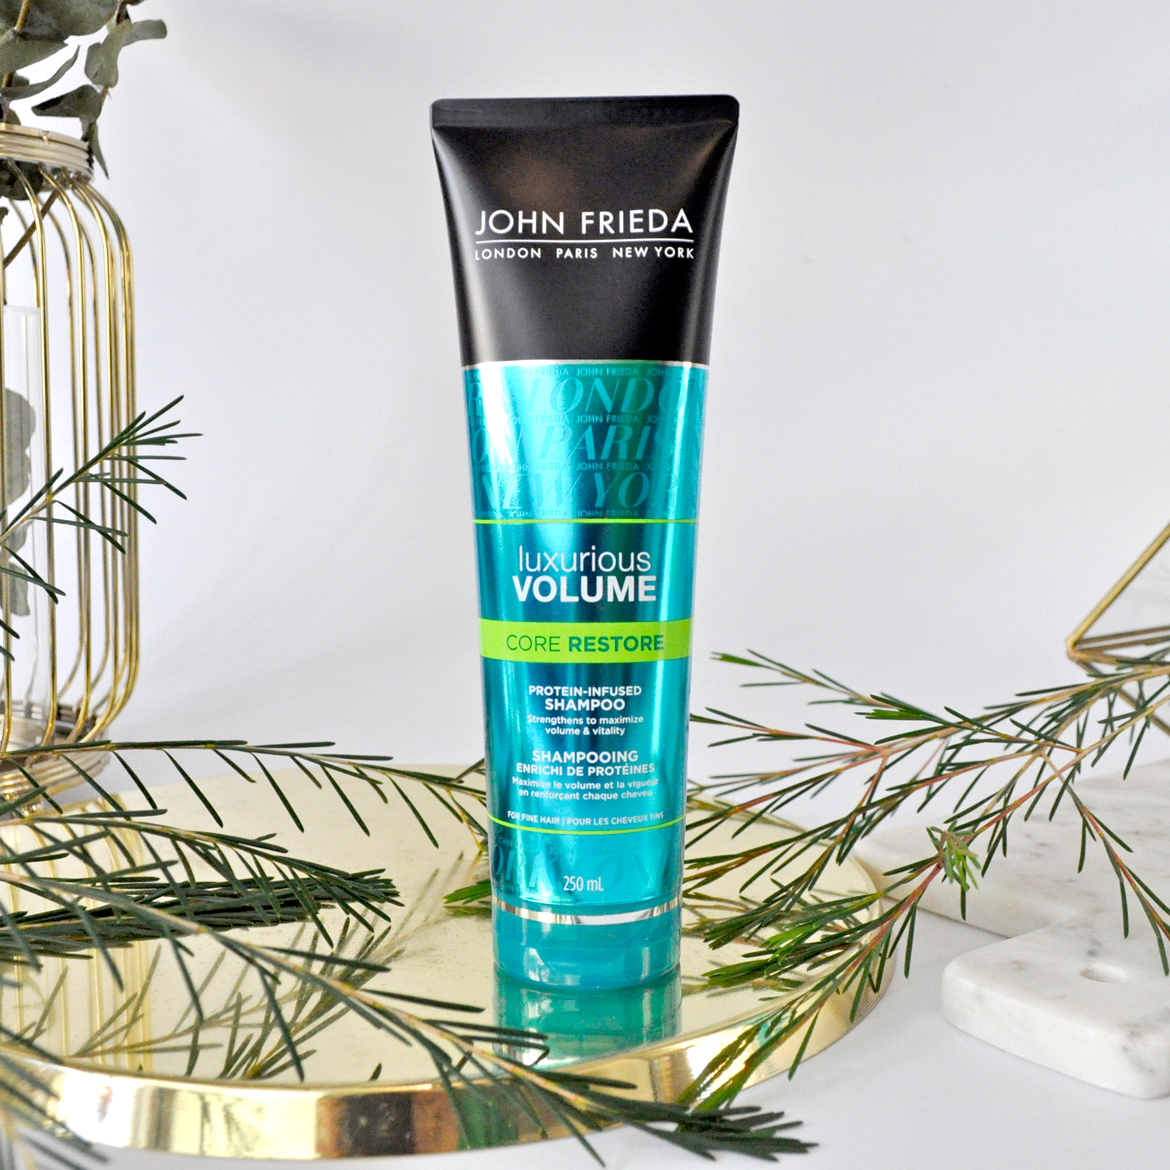 John Freida Luxurious Volume Core Restore Protein-Infused Shampoo